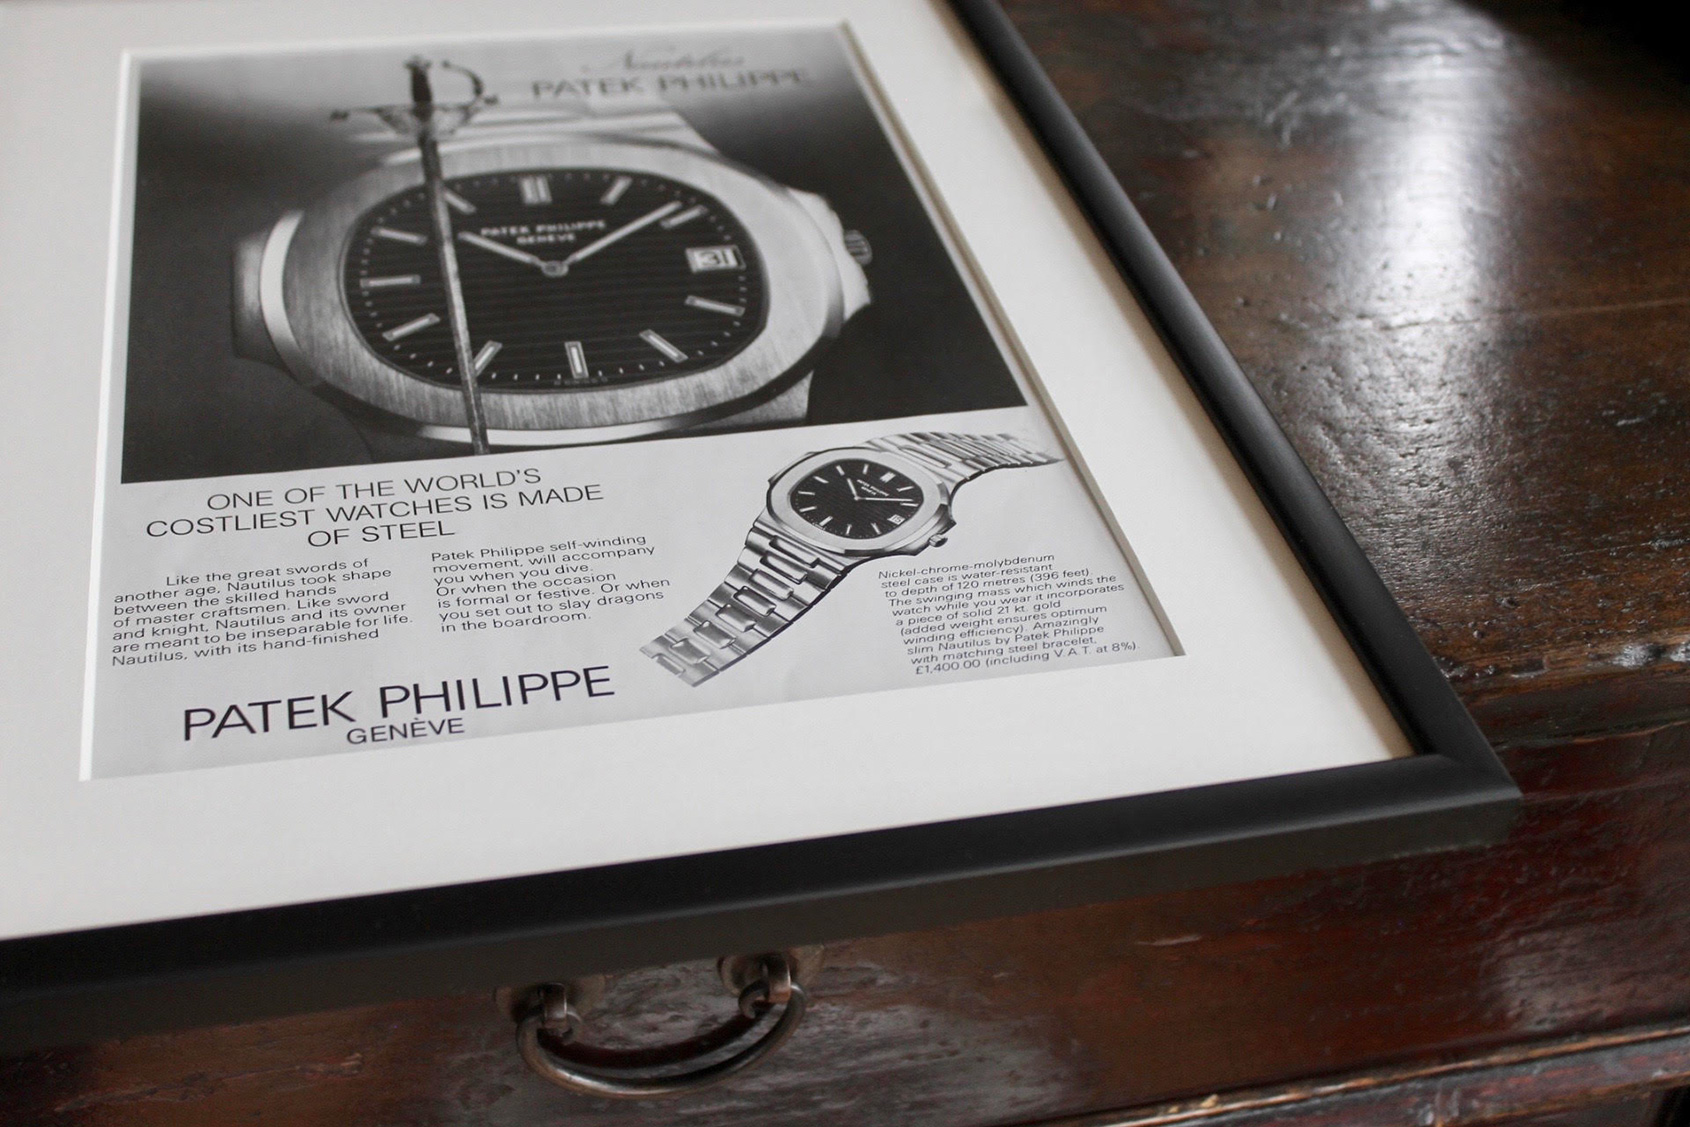 RECOMMENDED READING: Why Patek Philippe's decision to kill their most popular product is a business masterstroke